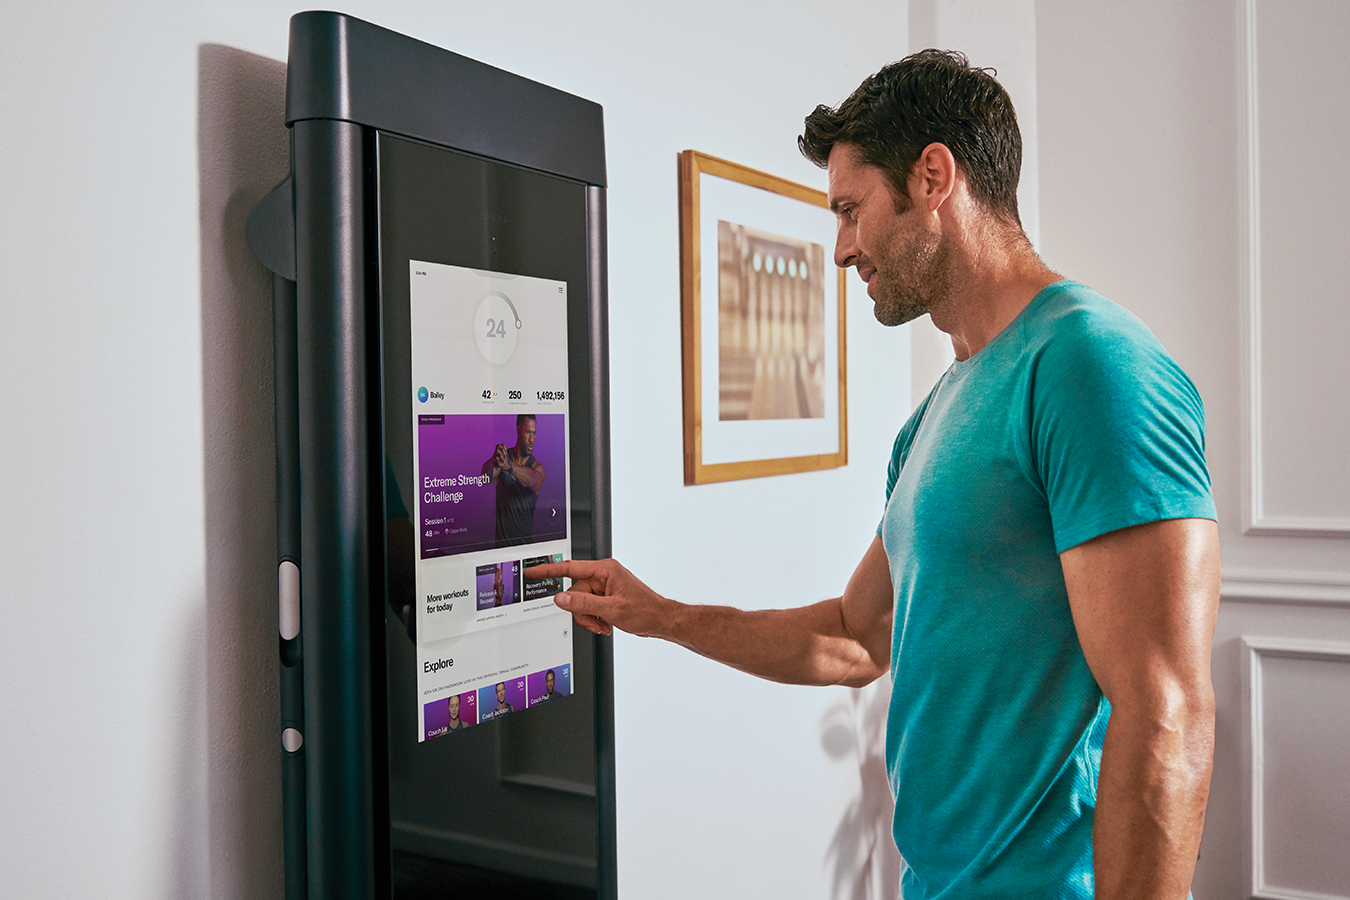 Connected fitness startup Tonal raises another $110 million